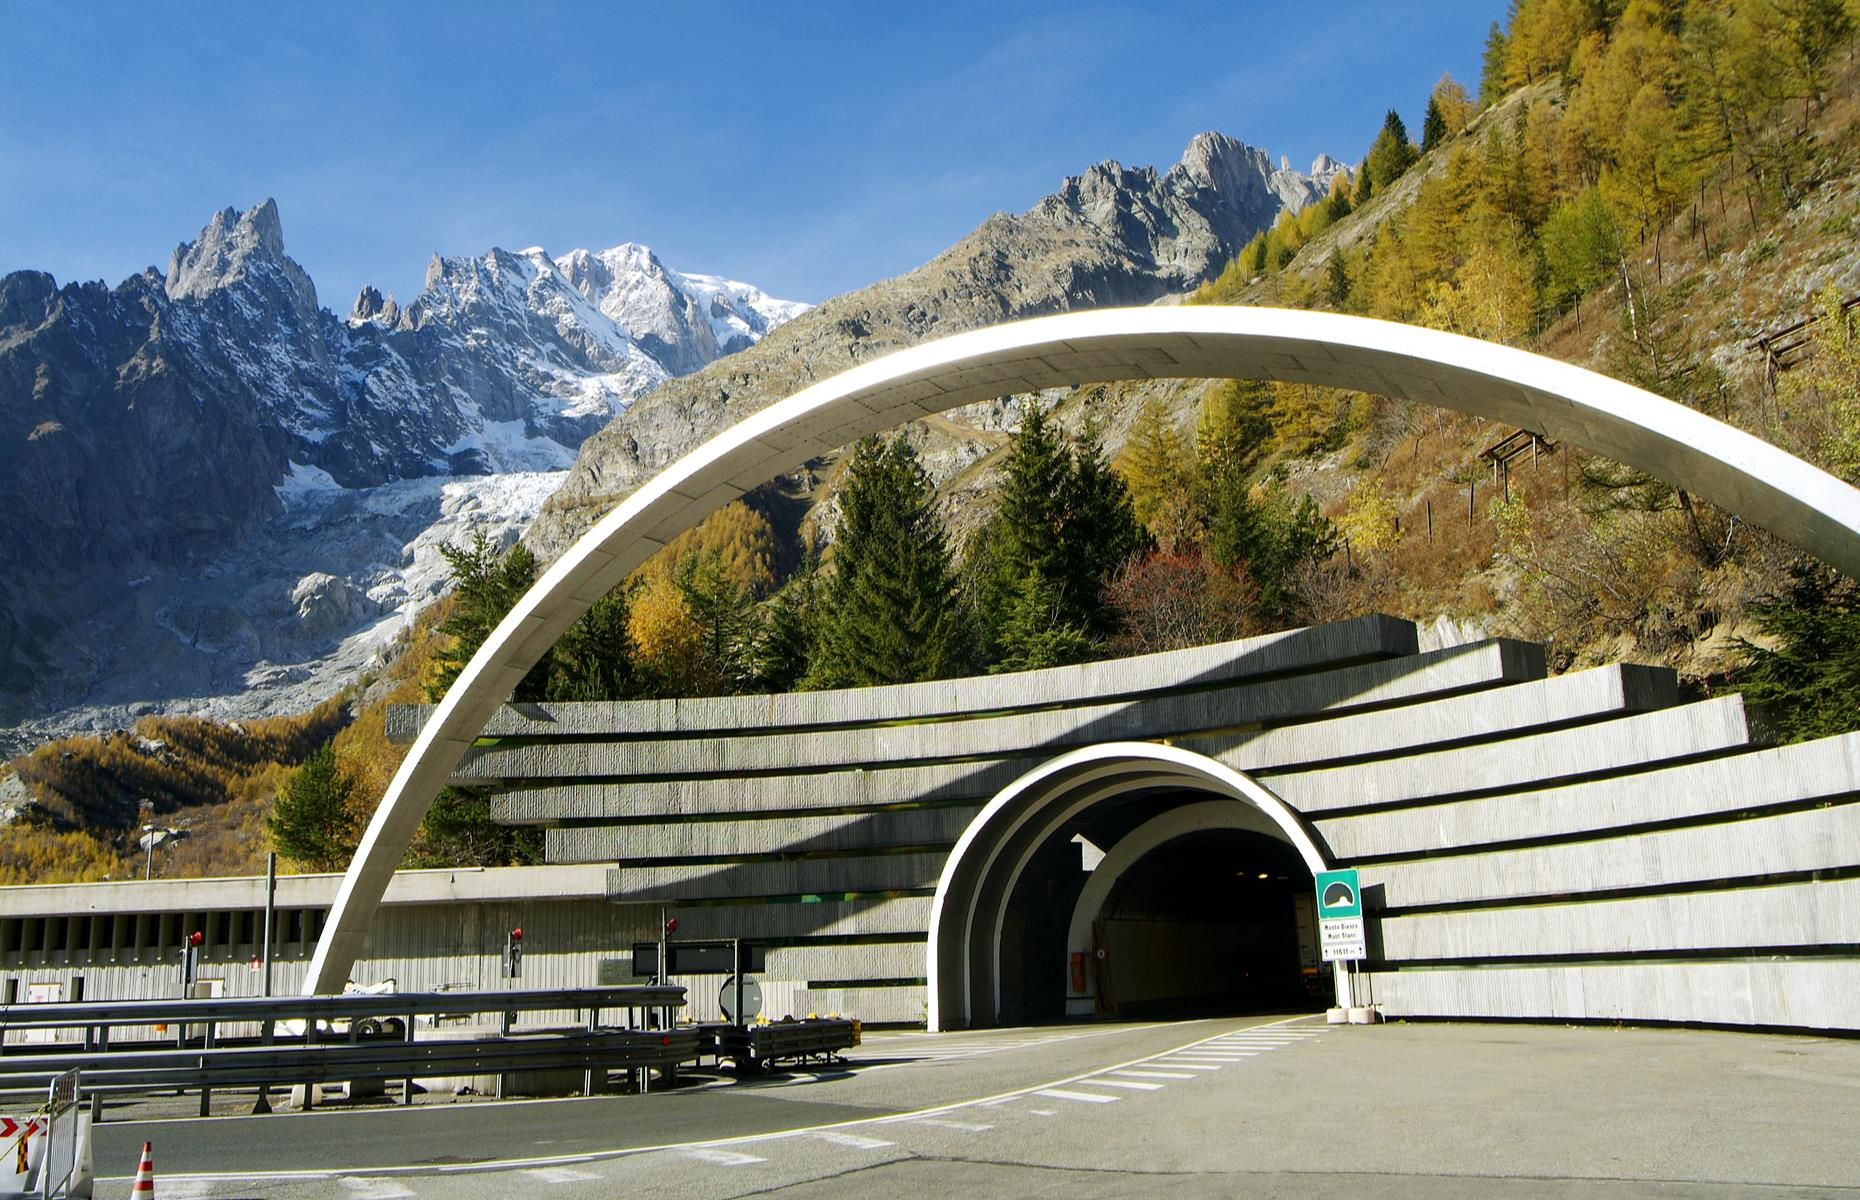 Slide 10 of 31: Another feat of modern engineering when it opened in 1965, the Mont Blanc Tunnel was the world's longest road tunnel at 7.2 miles (11.6km). Today it remains a vital link for truck drivers and skiers, among others, linking Chamonix in France with Courmayeur in Italy's Aosta Valley as it takes them under the Europe's tallest mountain, Mont Blanc. The tunnel passes almost exactly under the summit, where it's more than 8,000 feet (2,500m) beneath the surface.